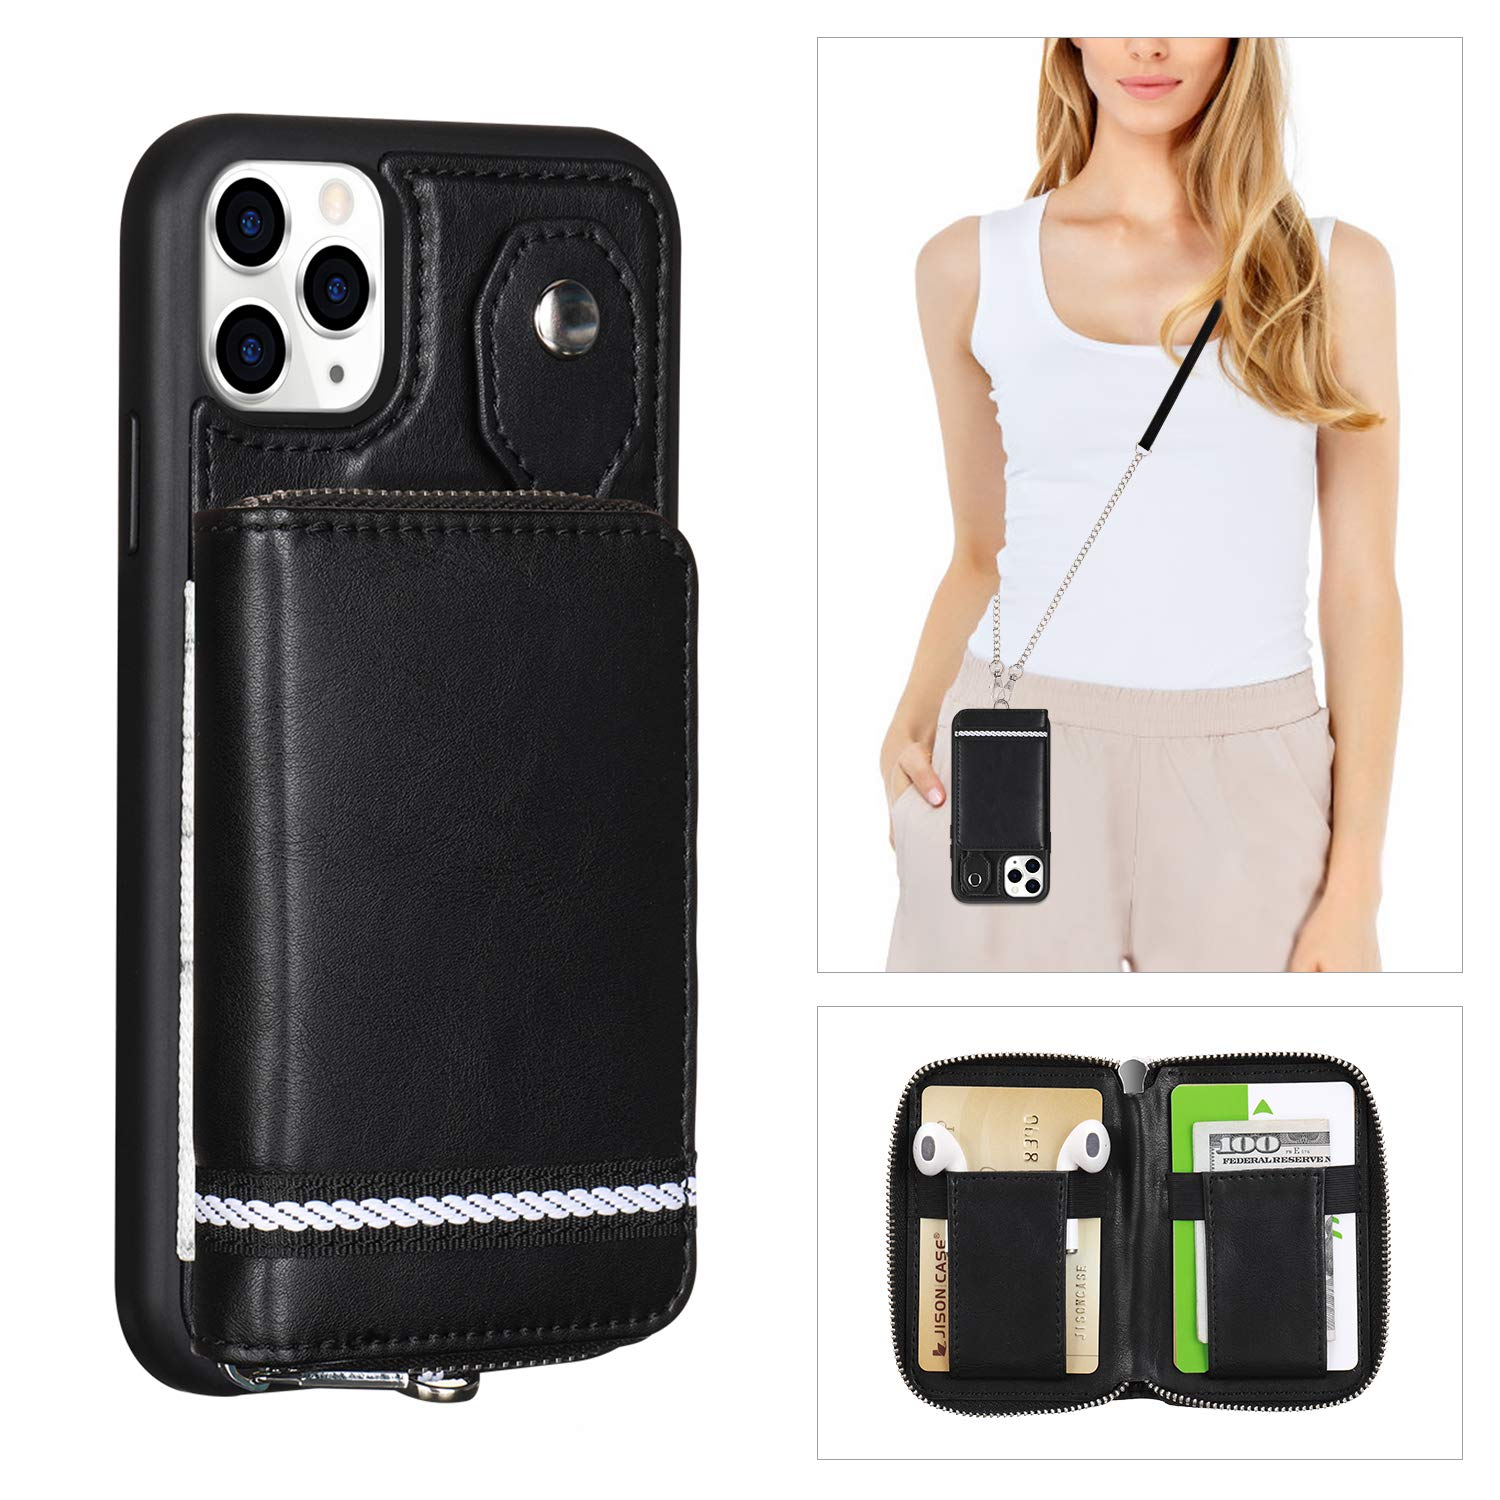 TOOVREN Upgraded iPhone 11 Pro Max Wallet Case, Detachable Zipper Purse iPhone 11 Pro Max Crossbody Case with Wrist Strap Card Holder Protective Cover Women Girl for iPhone 11 Pro Max - Black